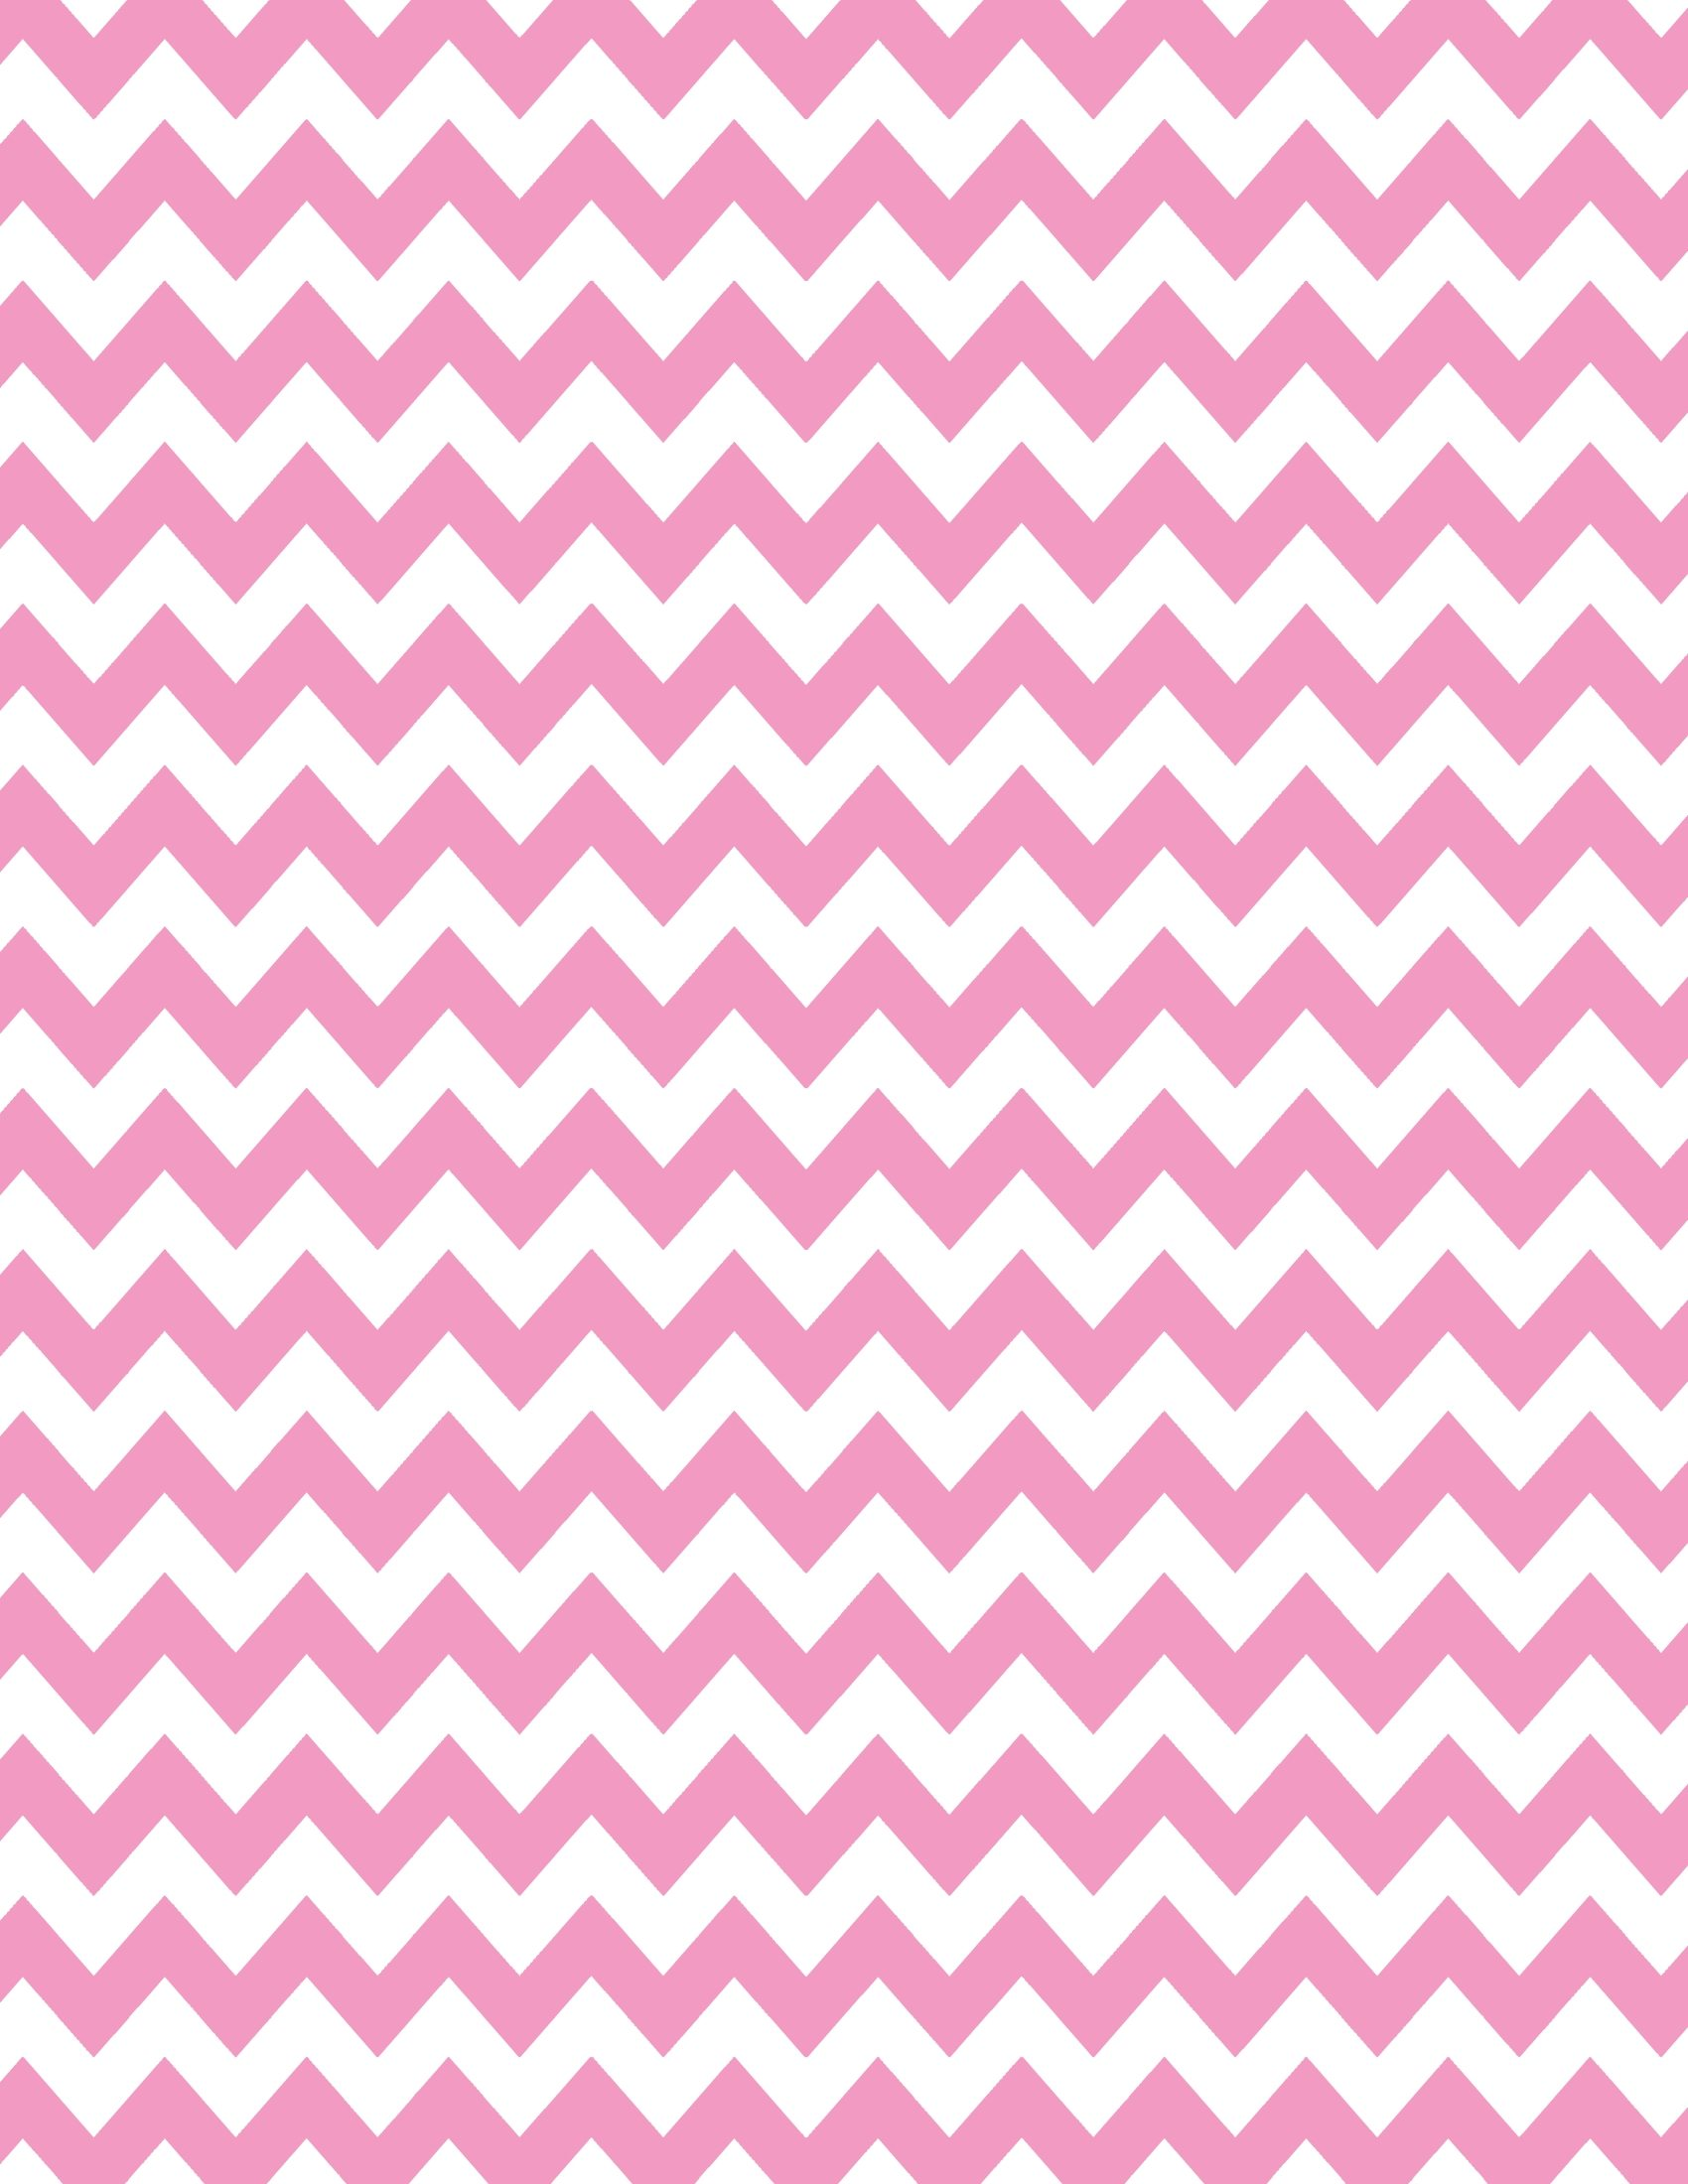 Free Chevron Background.